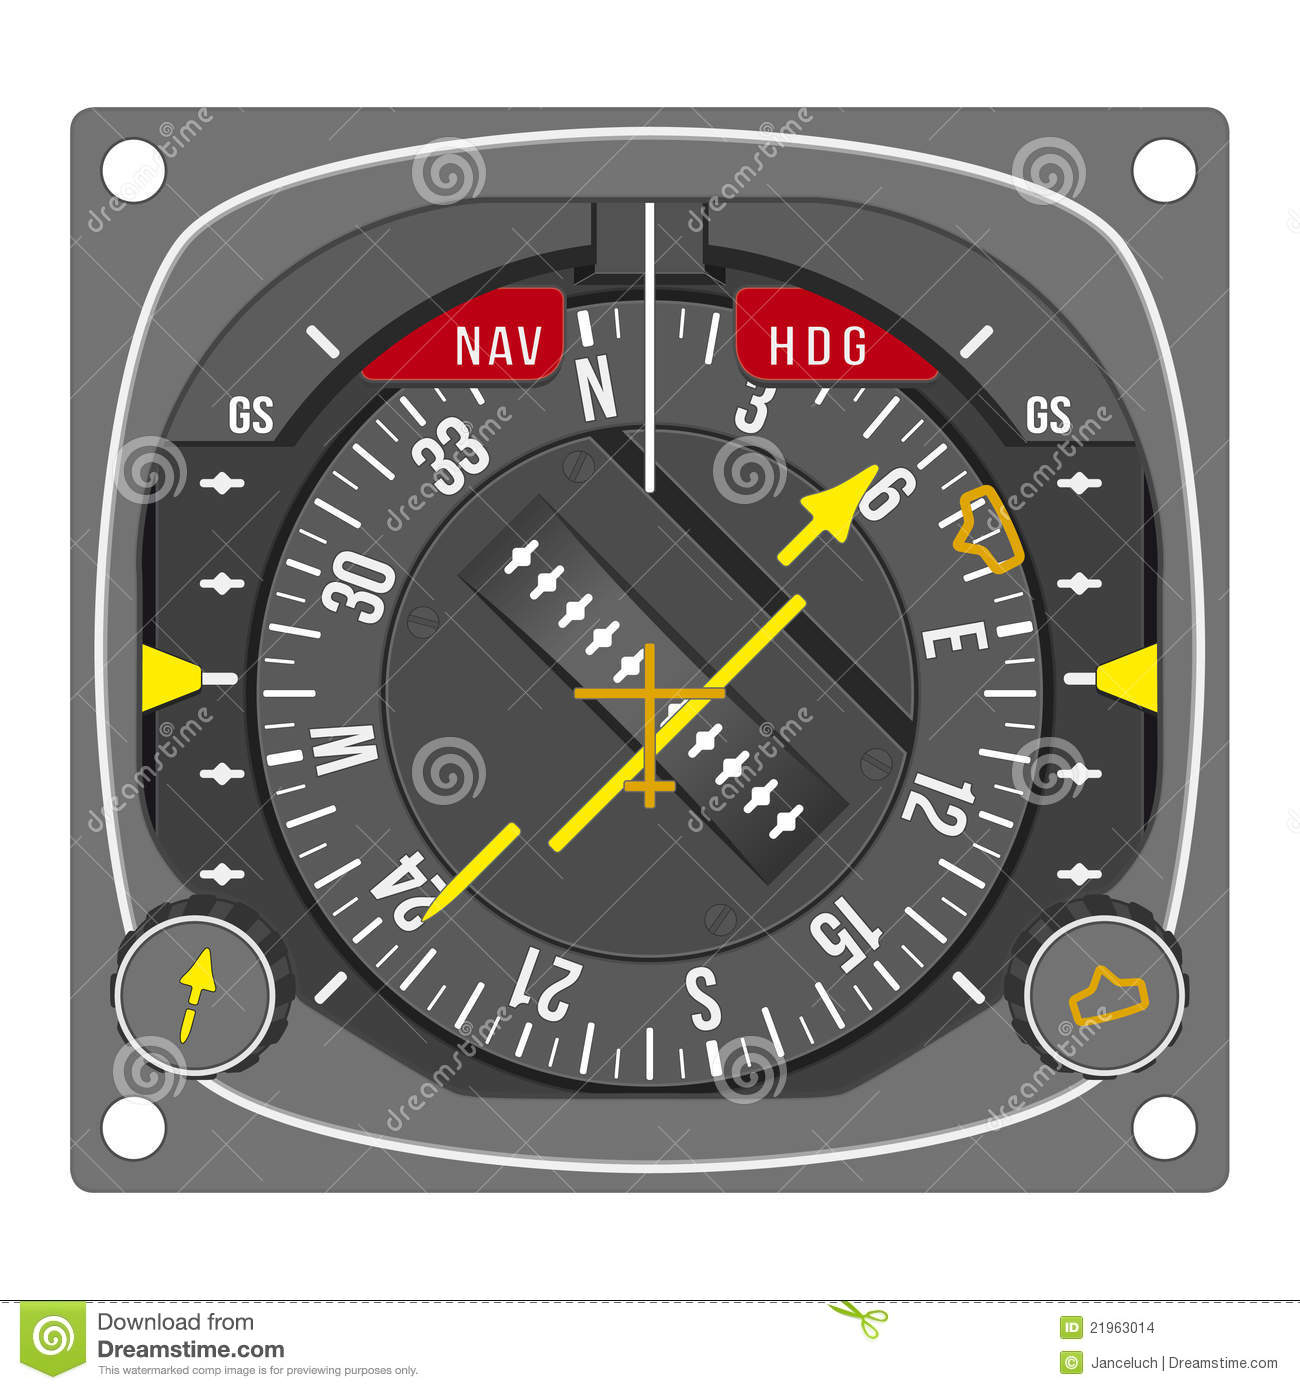 Stock Images Aircraft Navigation Indicator Hsi Image21963014 together with Tissot T Race Touch Aluminium Photos Price in addition ULN2803 also Richard Garriott Book Interview besides B003KJ4O2S. on electronic clock